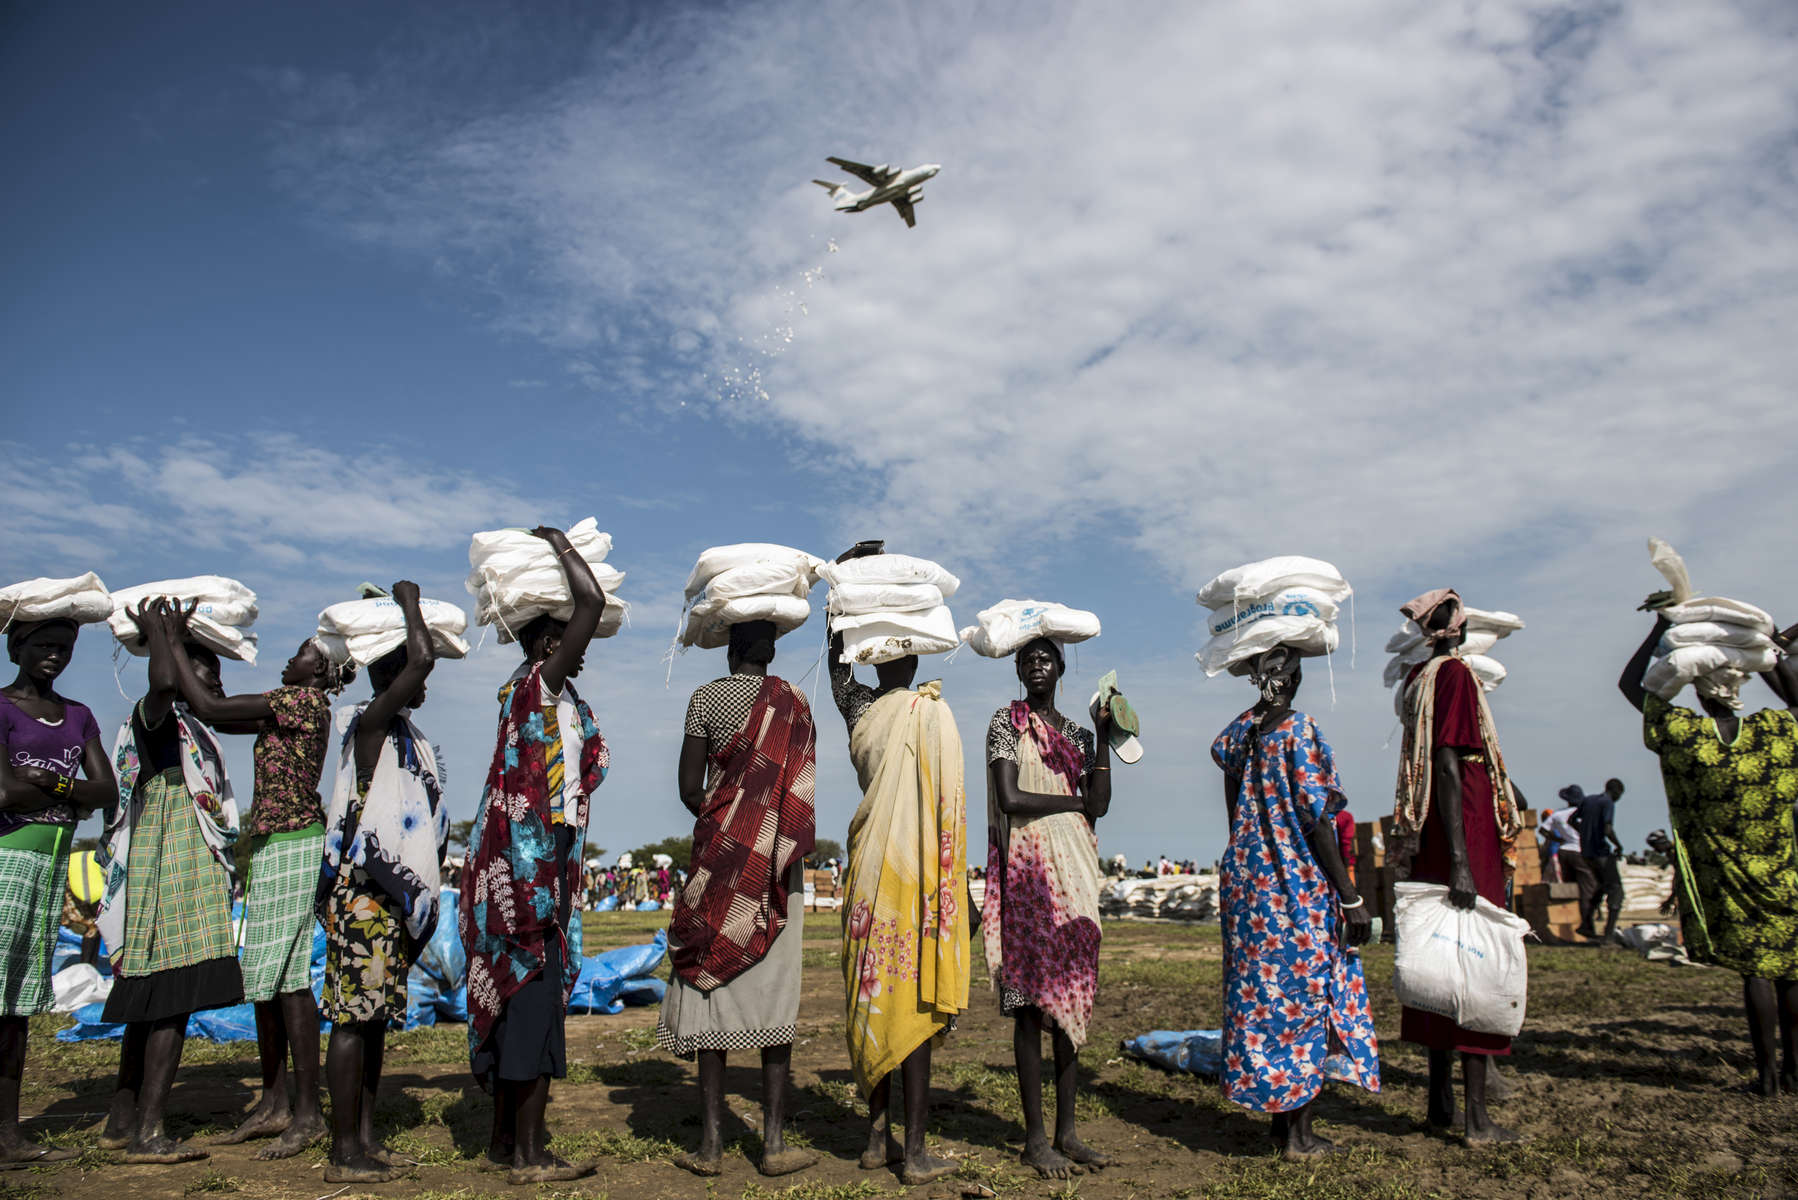 Planes with the World Food Program conduct food drops to help aid new internally displaced Southern Sudanese, who were recently displaced from Leer, Mayangi, and Koch to the  area of Nyal, in Unity State, South Sudan, September 10, 2015.  Because of ongoing fighting throughout South Sudan, civilians have been unable to till their land and plant crops, and aid organisations have been unable to deliver food. In a rare window of peace in the area, WFP has been dropping TK tons of food in Nyal for locals and surrounding villages. Chuol, 9, from southern Unity State or outside Leer, lives within a host community full of local villagers and other internally displaced with his grandmother and sister. several months ago, his own village was attacked, and his father and grandfather were burned alive. He, his grandmother, and sister fled to this area, where they are living on the ground of a host family.